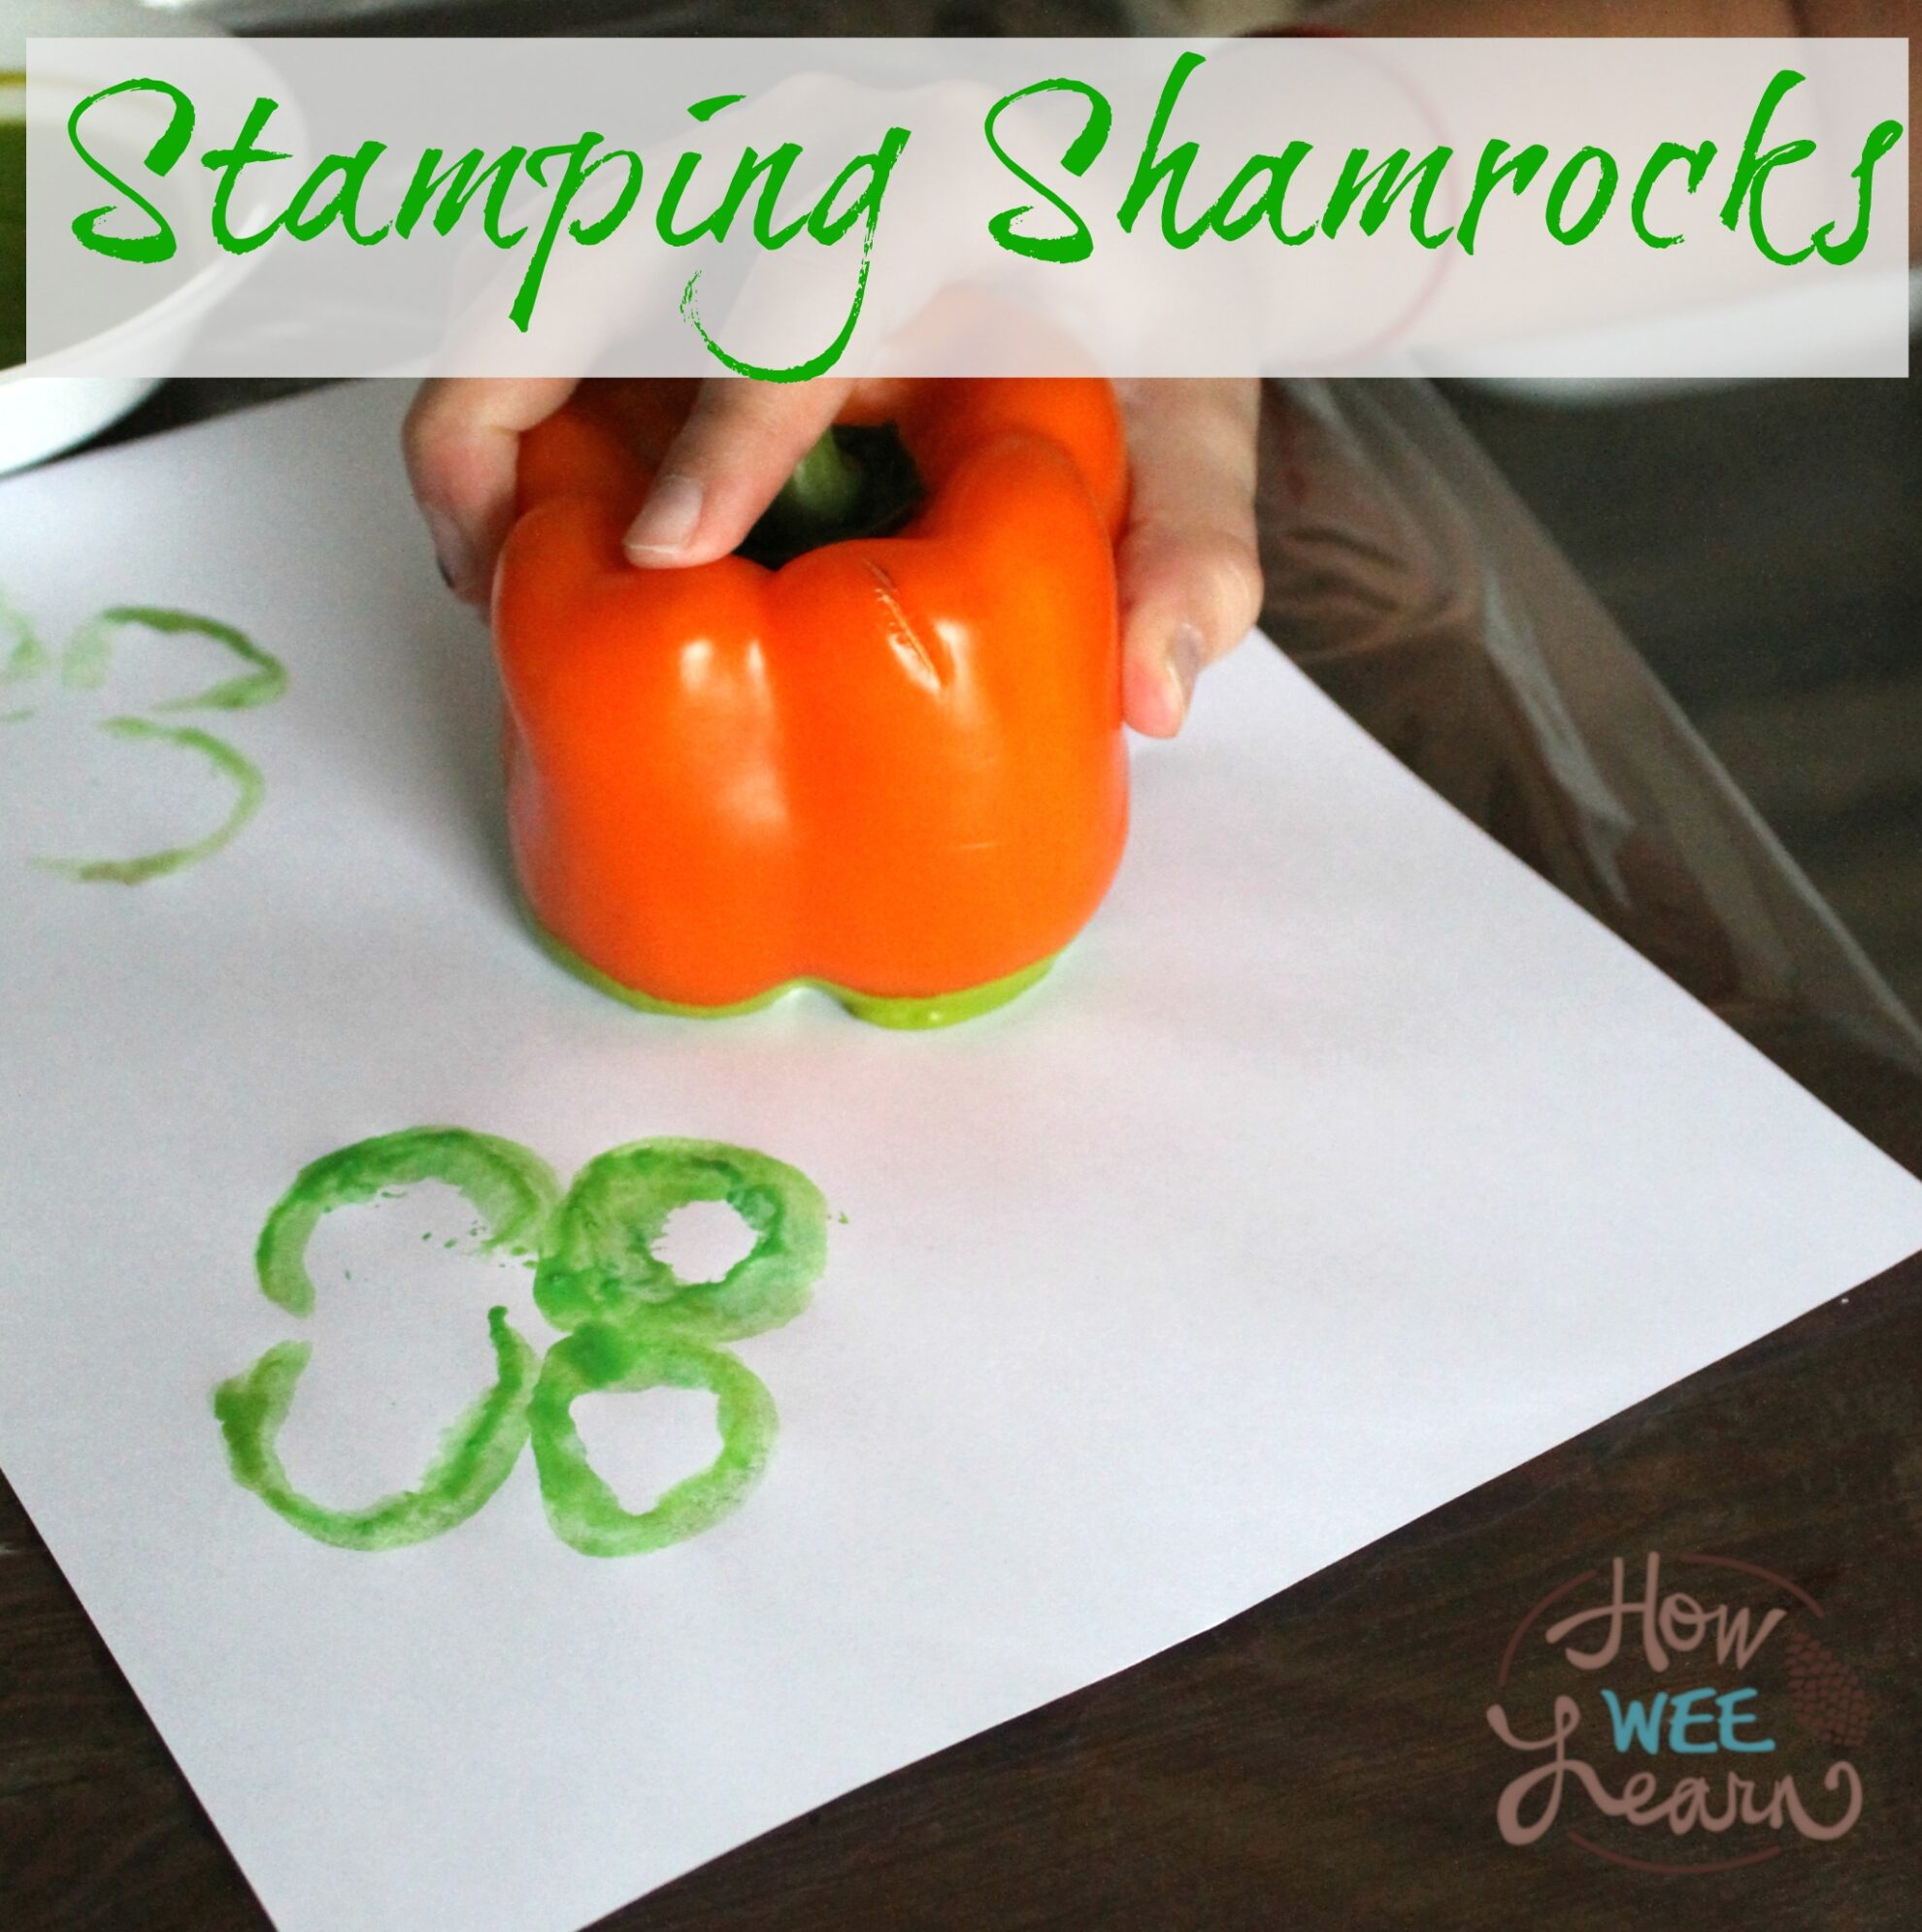 This is a great craft for St Patrick's Day! Making Shamrock stamps with preschoolers out of peppers